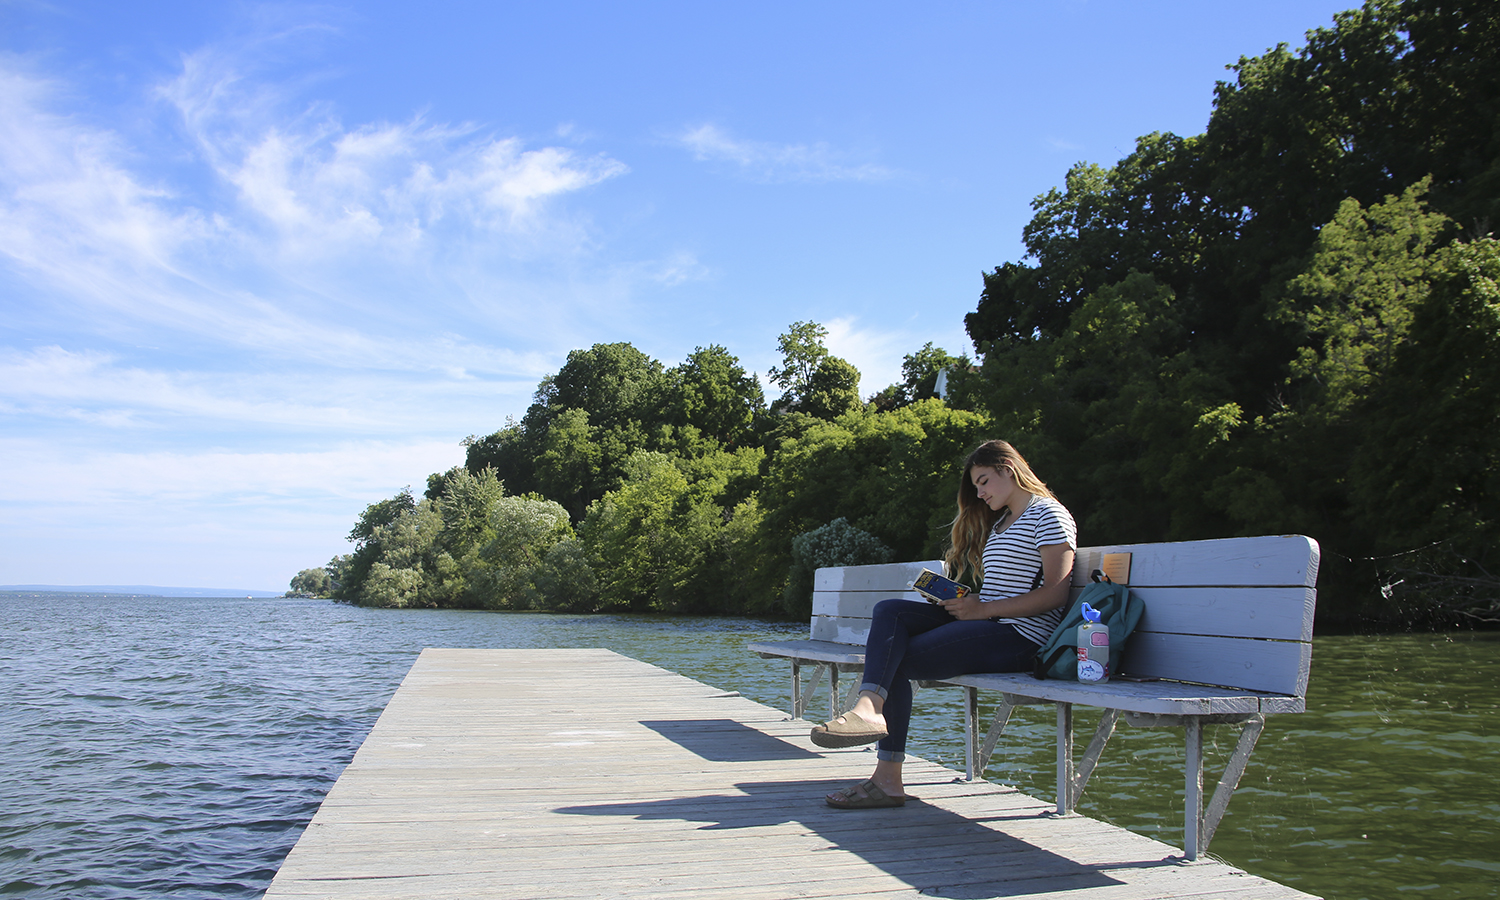 CCESL summer intern, Edie Falk '21, is shown sitting in her favourite place to read and relax on campus, the benches by the boathouse. She likes how calm the boathouse is, giving her the opportunity to read her favourite summer book, The Great Gatsby by F. Scott Fitzgerald.